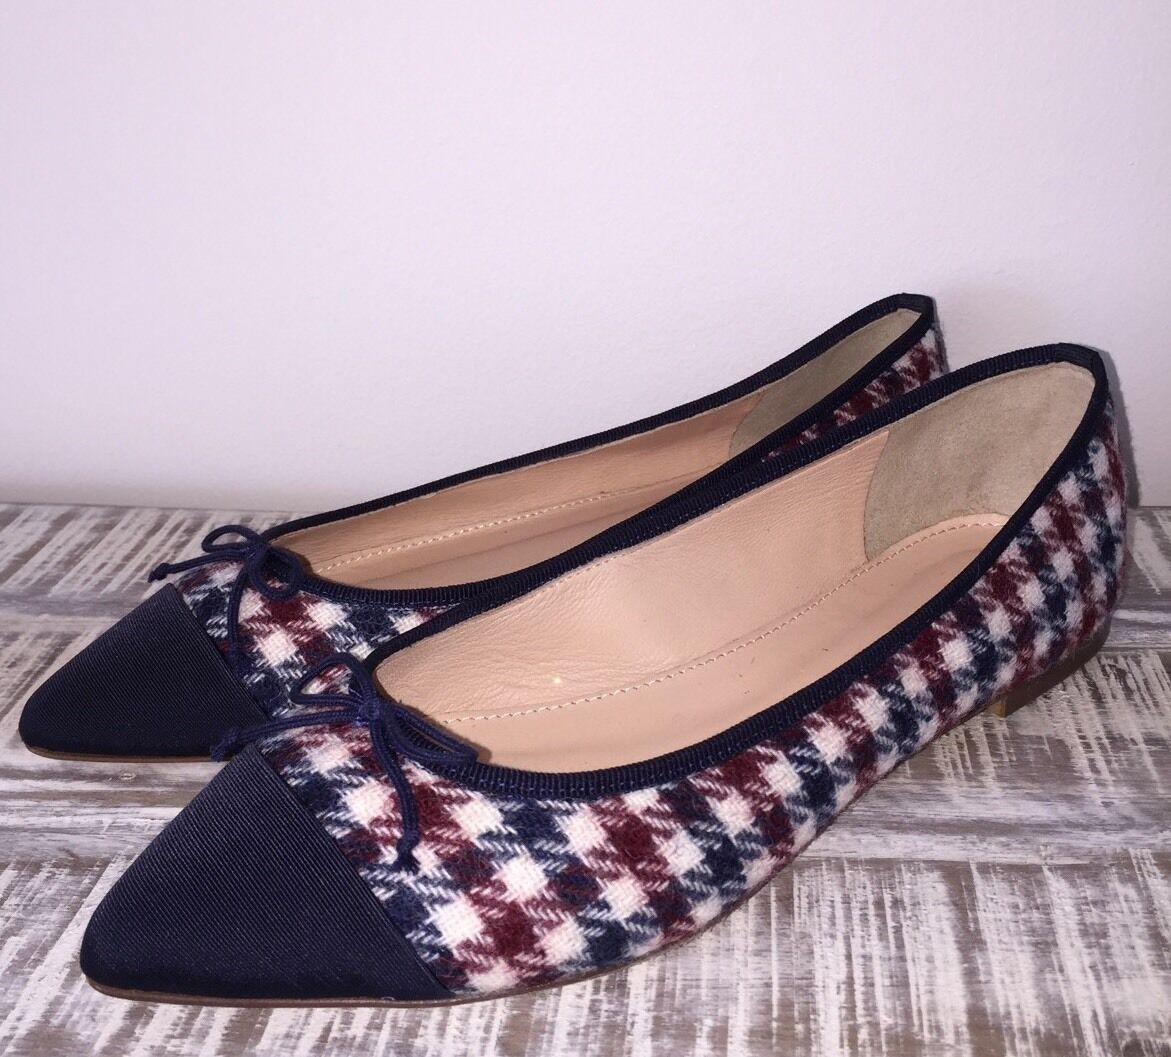 JCrew  118 Gemma Cap-Toe Flats in Tweed Sz 6.5 Ivory Burgundy Navy F5518